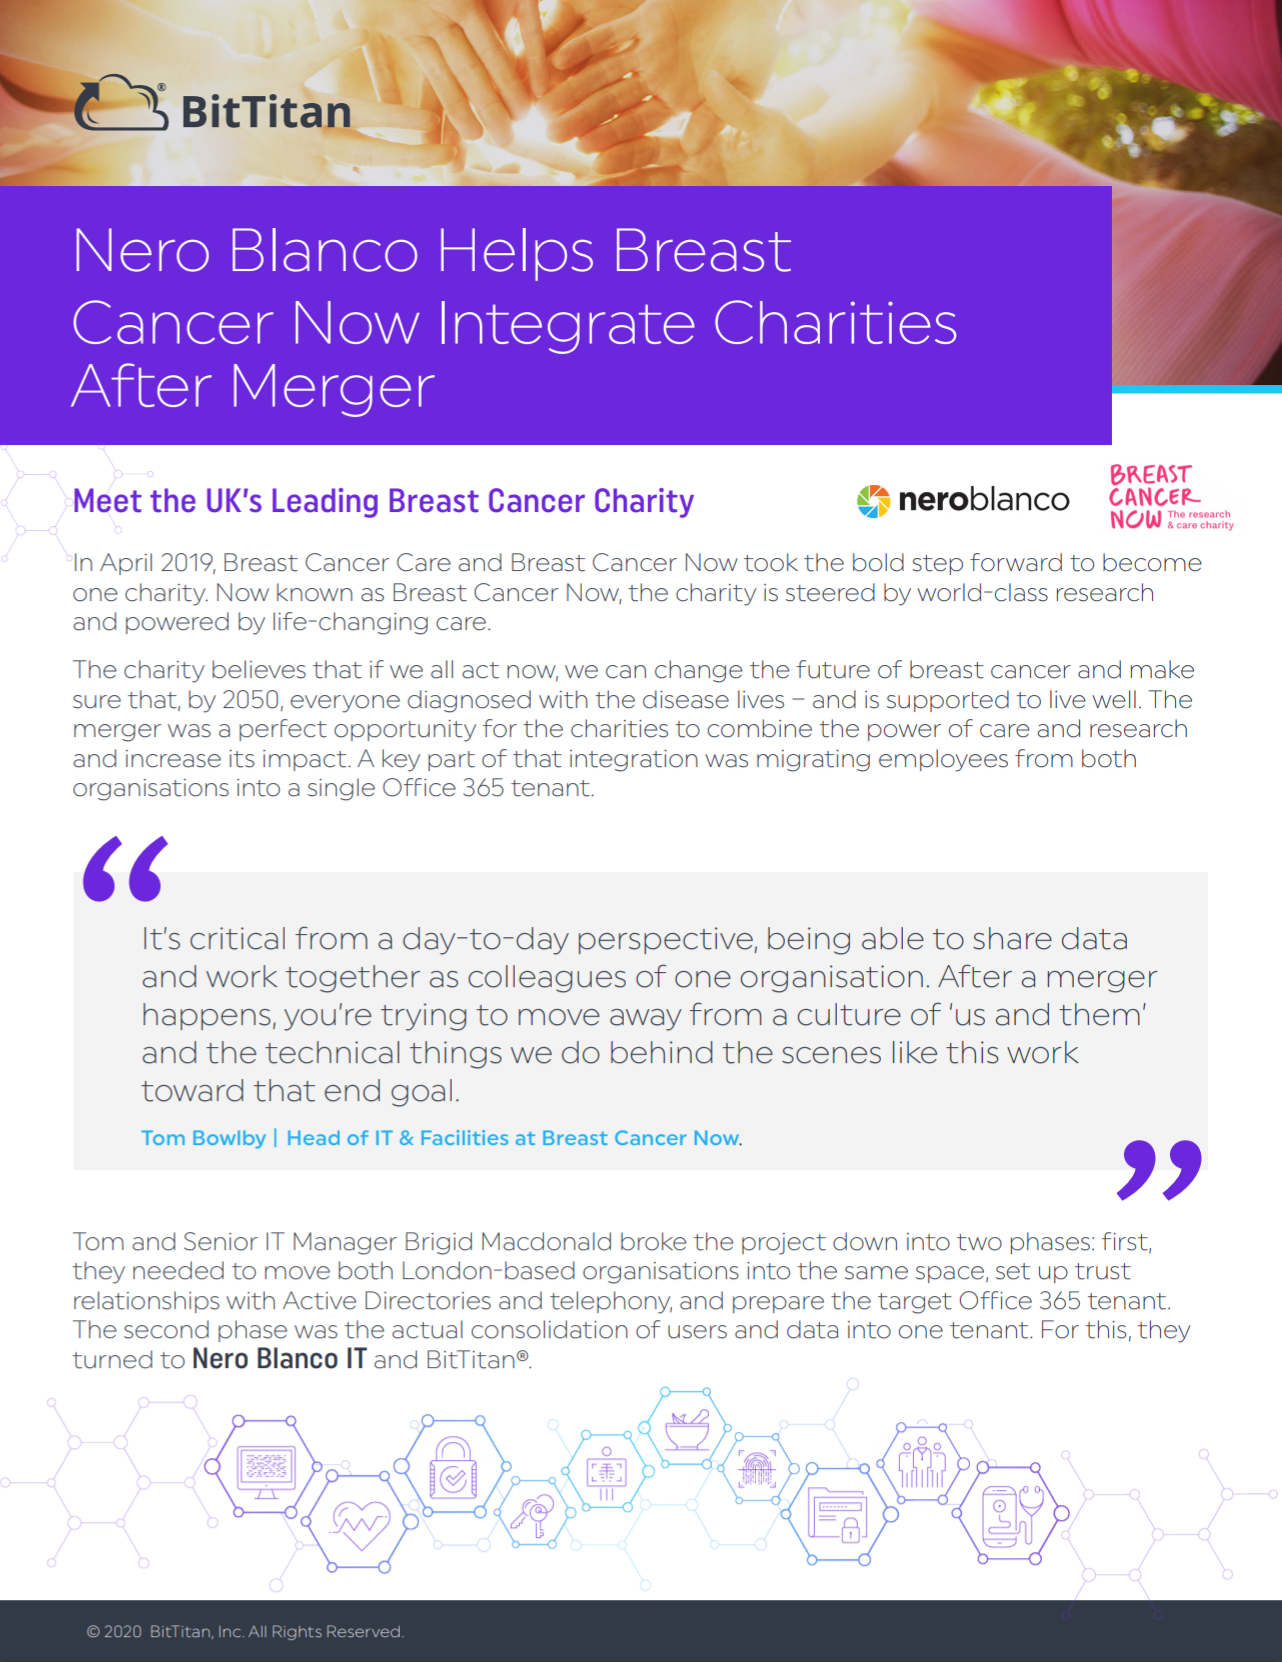 Nero Blanco IT Helps Breast Cancer Now Integrate Charities After Merger